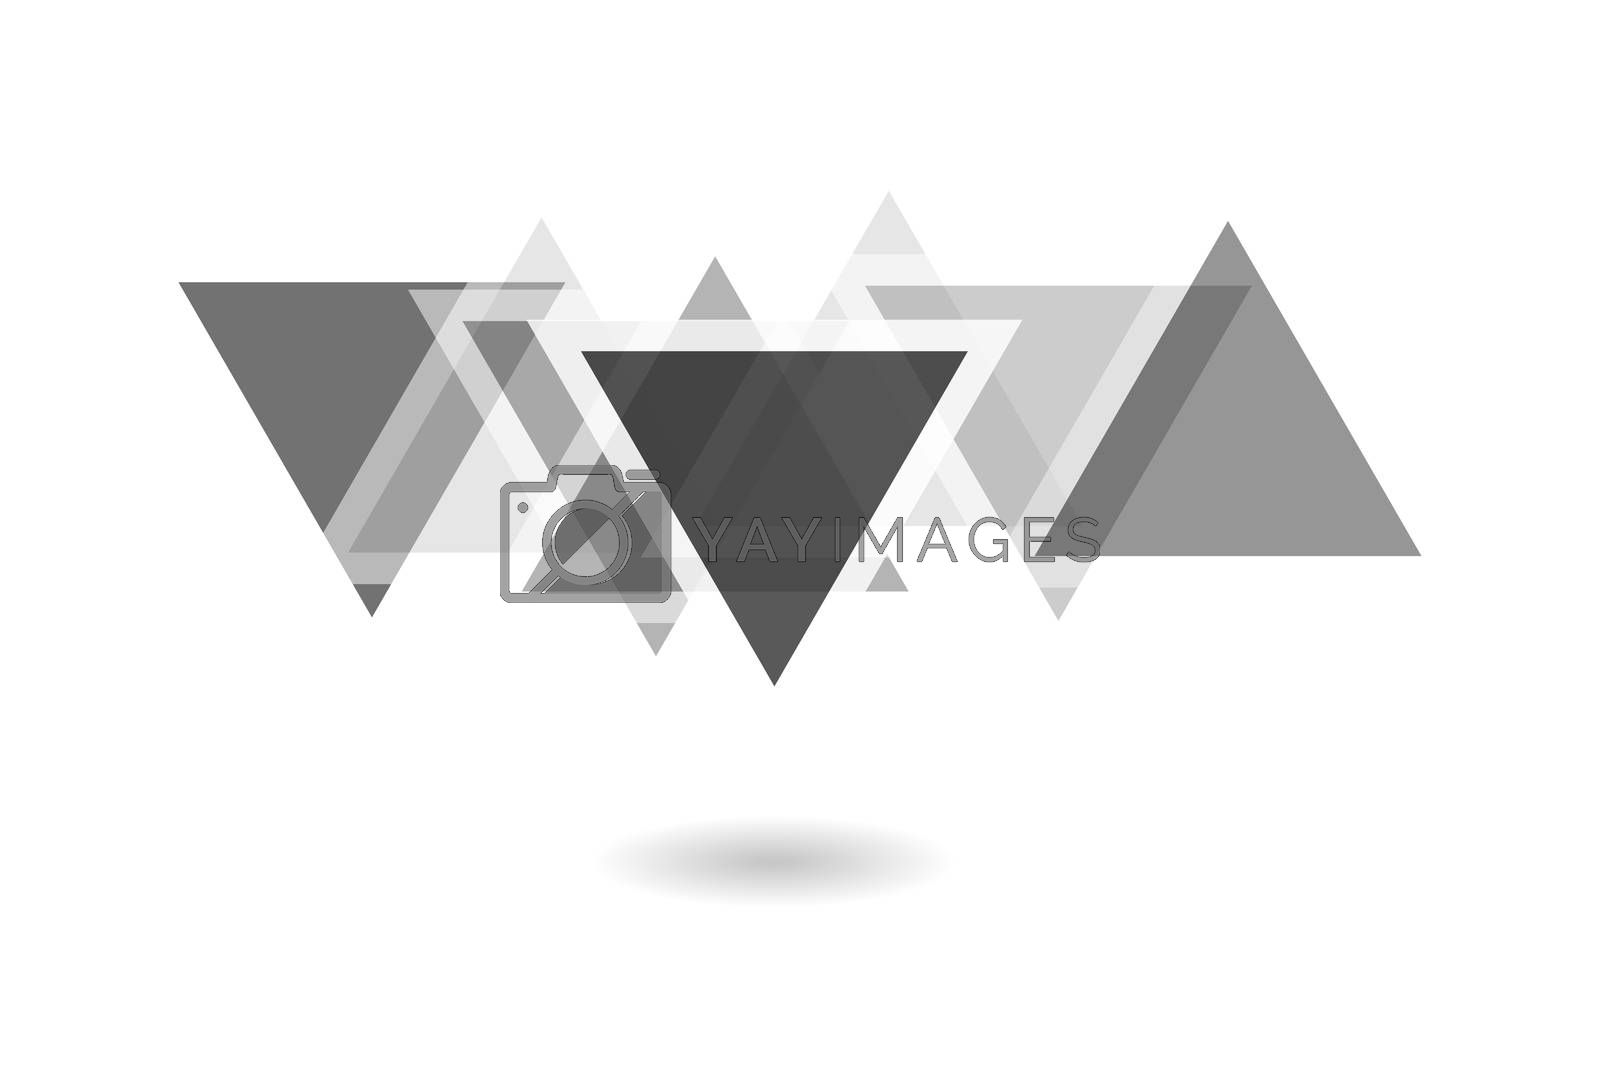 Royalty free image of Abstract geometric pattern, black and white overlapping triangle logo by mouu007